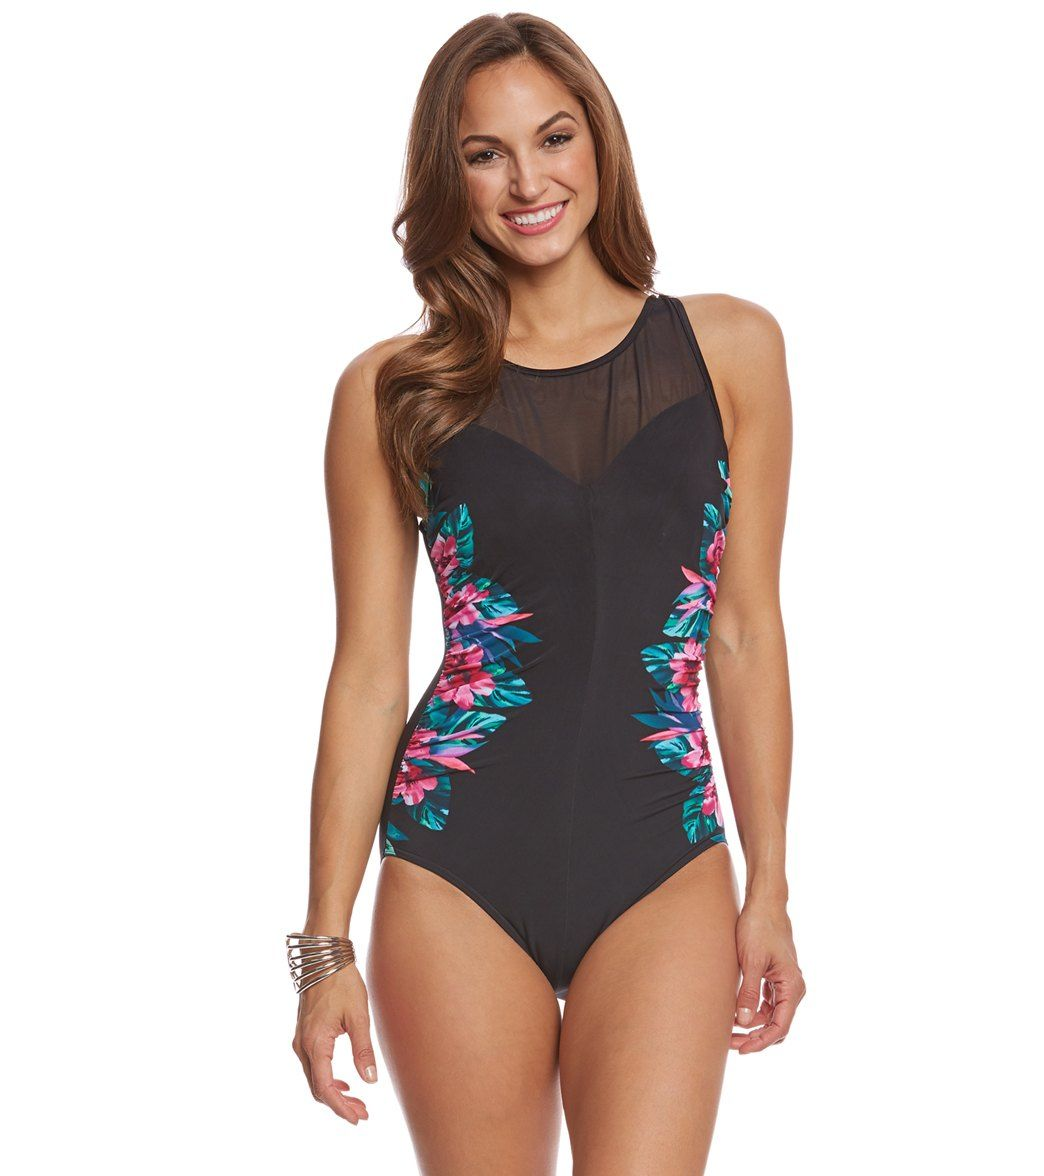 6d0c4fd28e4 Miraclesuit Tahitian Temptress Fascination Underwire One Piece Swimsuit at  SwimOutlet.com - Free Shipping